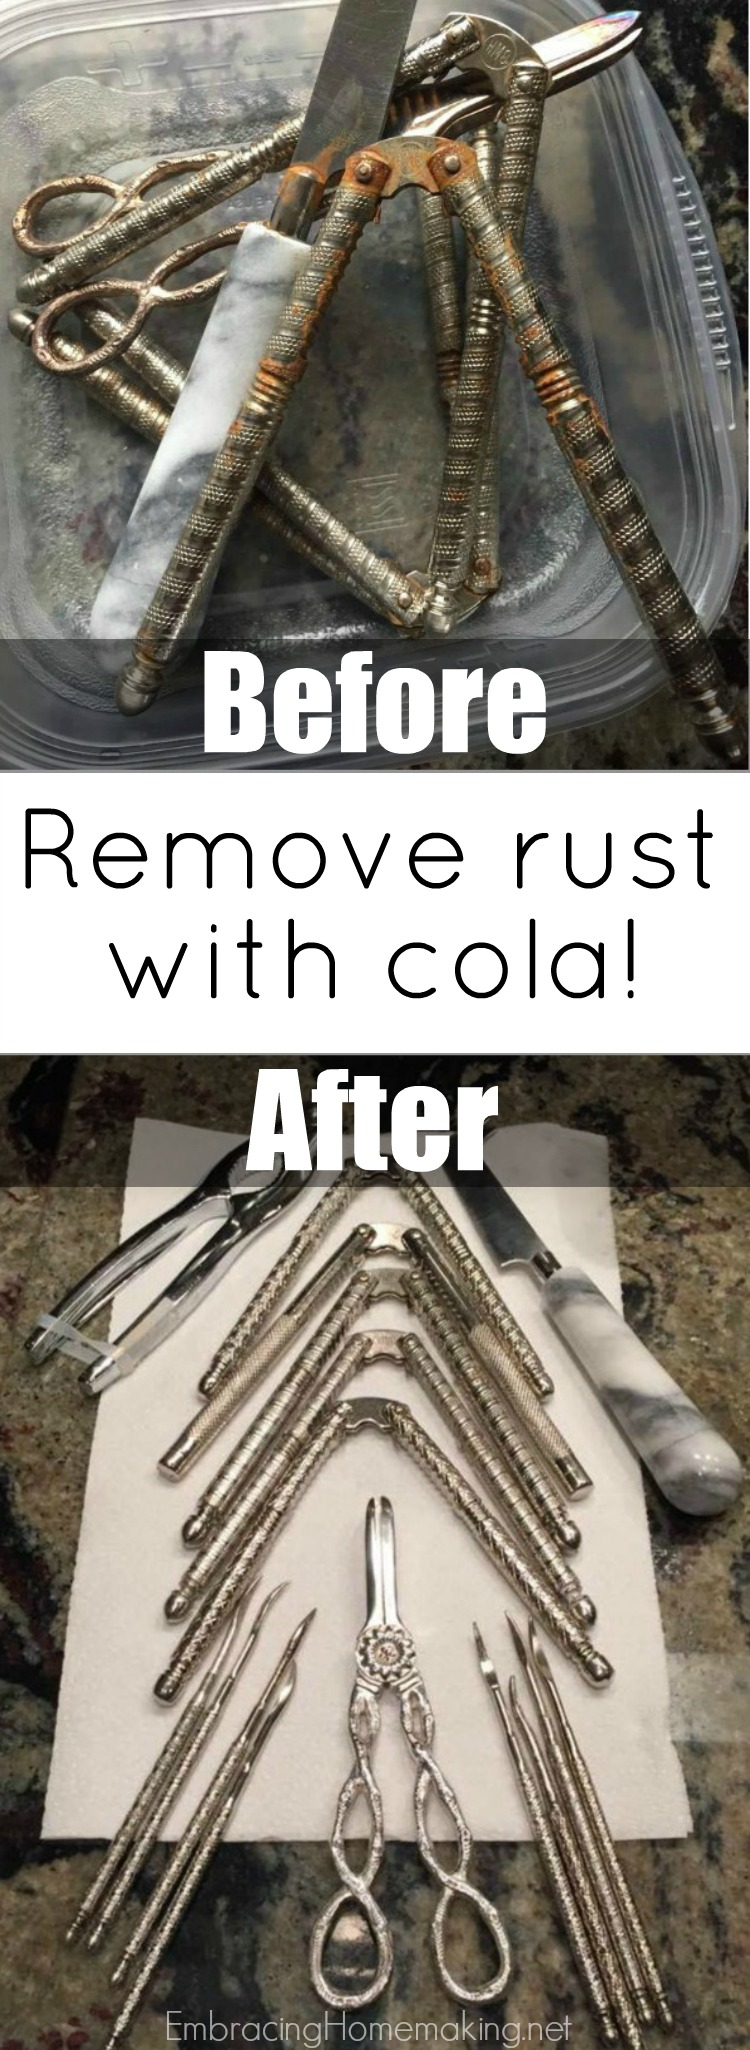 Remove Rust With Cola